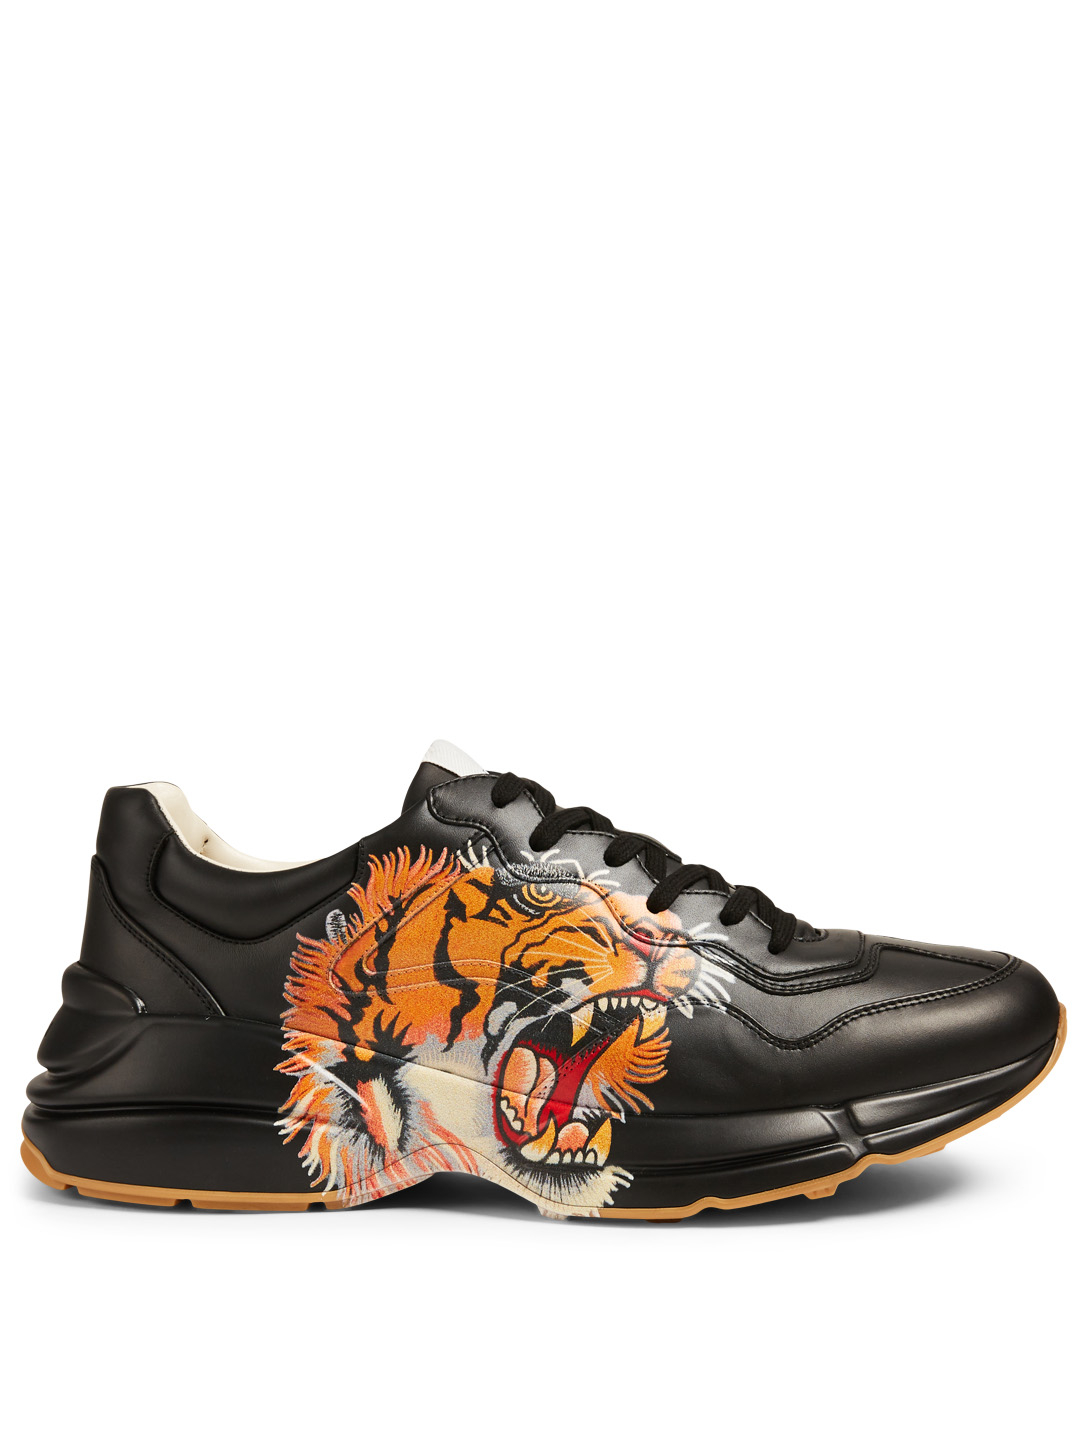 57b7cc8e071 GUCCI Rhyton Leather Sneakers With Tiger Men's Black ...